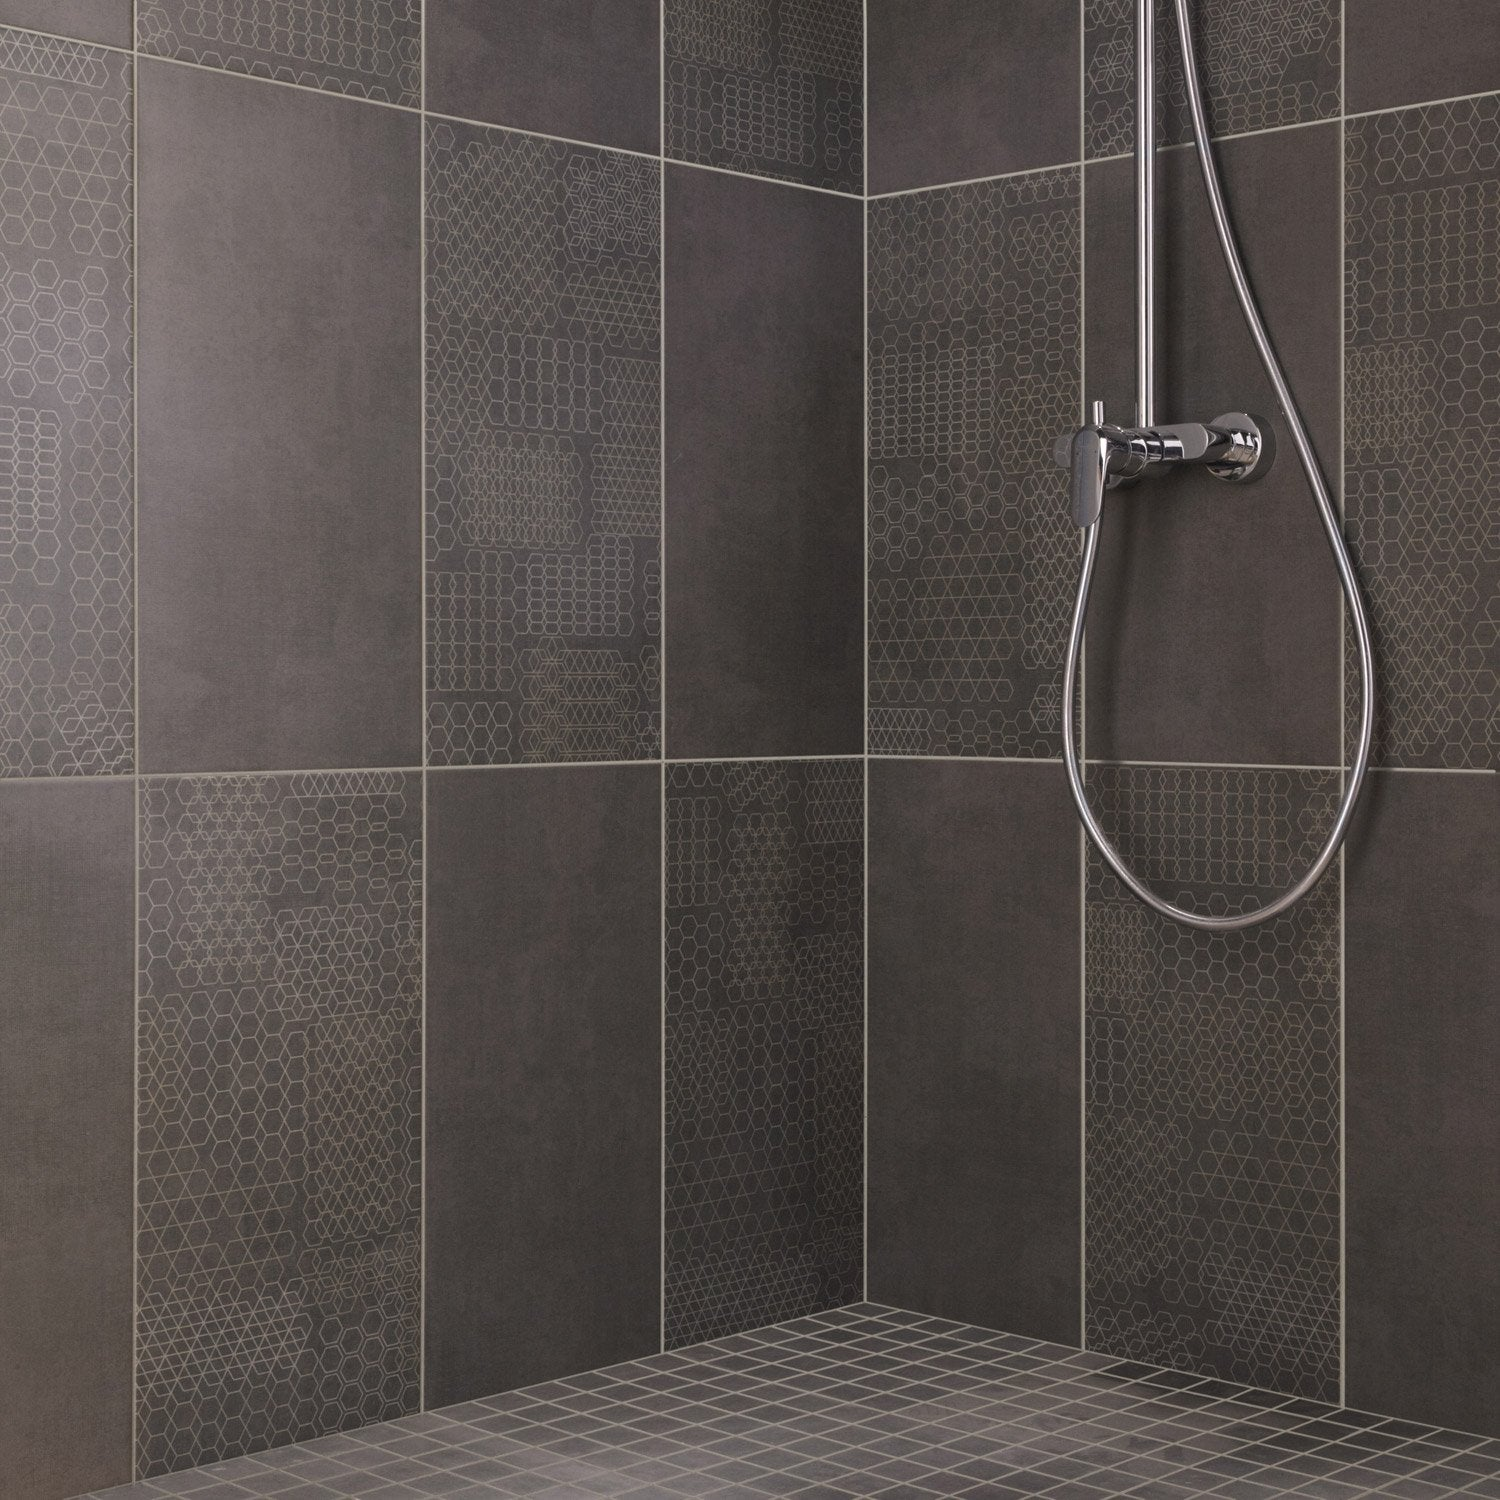 Fa ence mur anthracite tweed x cm leroy merlin for Faience salle de bain carrelage gris